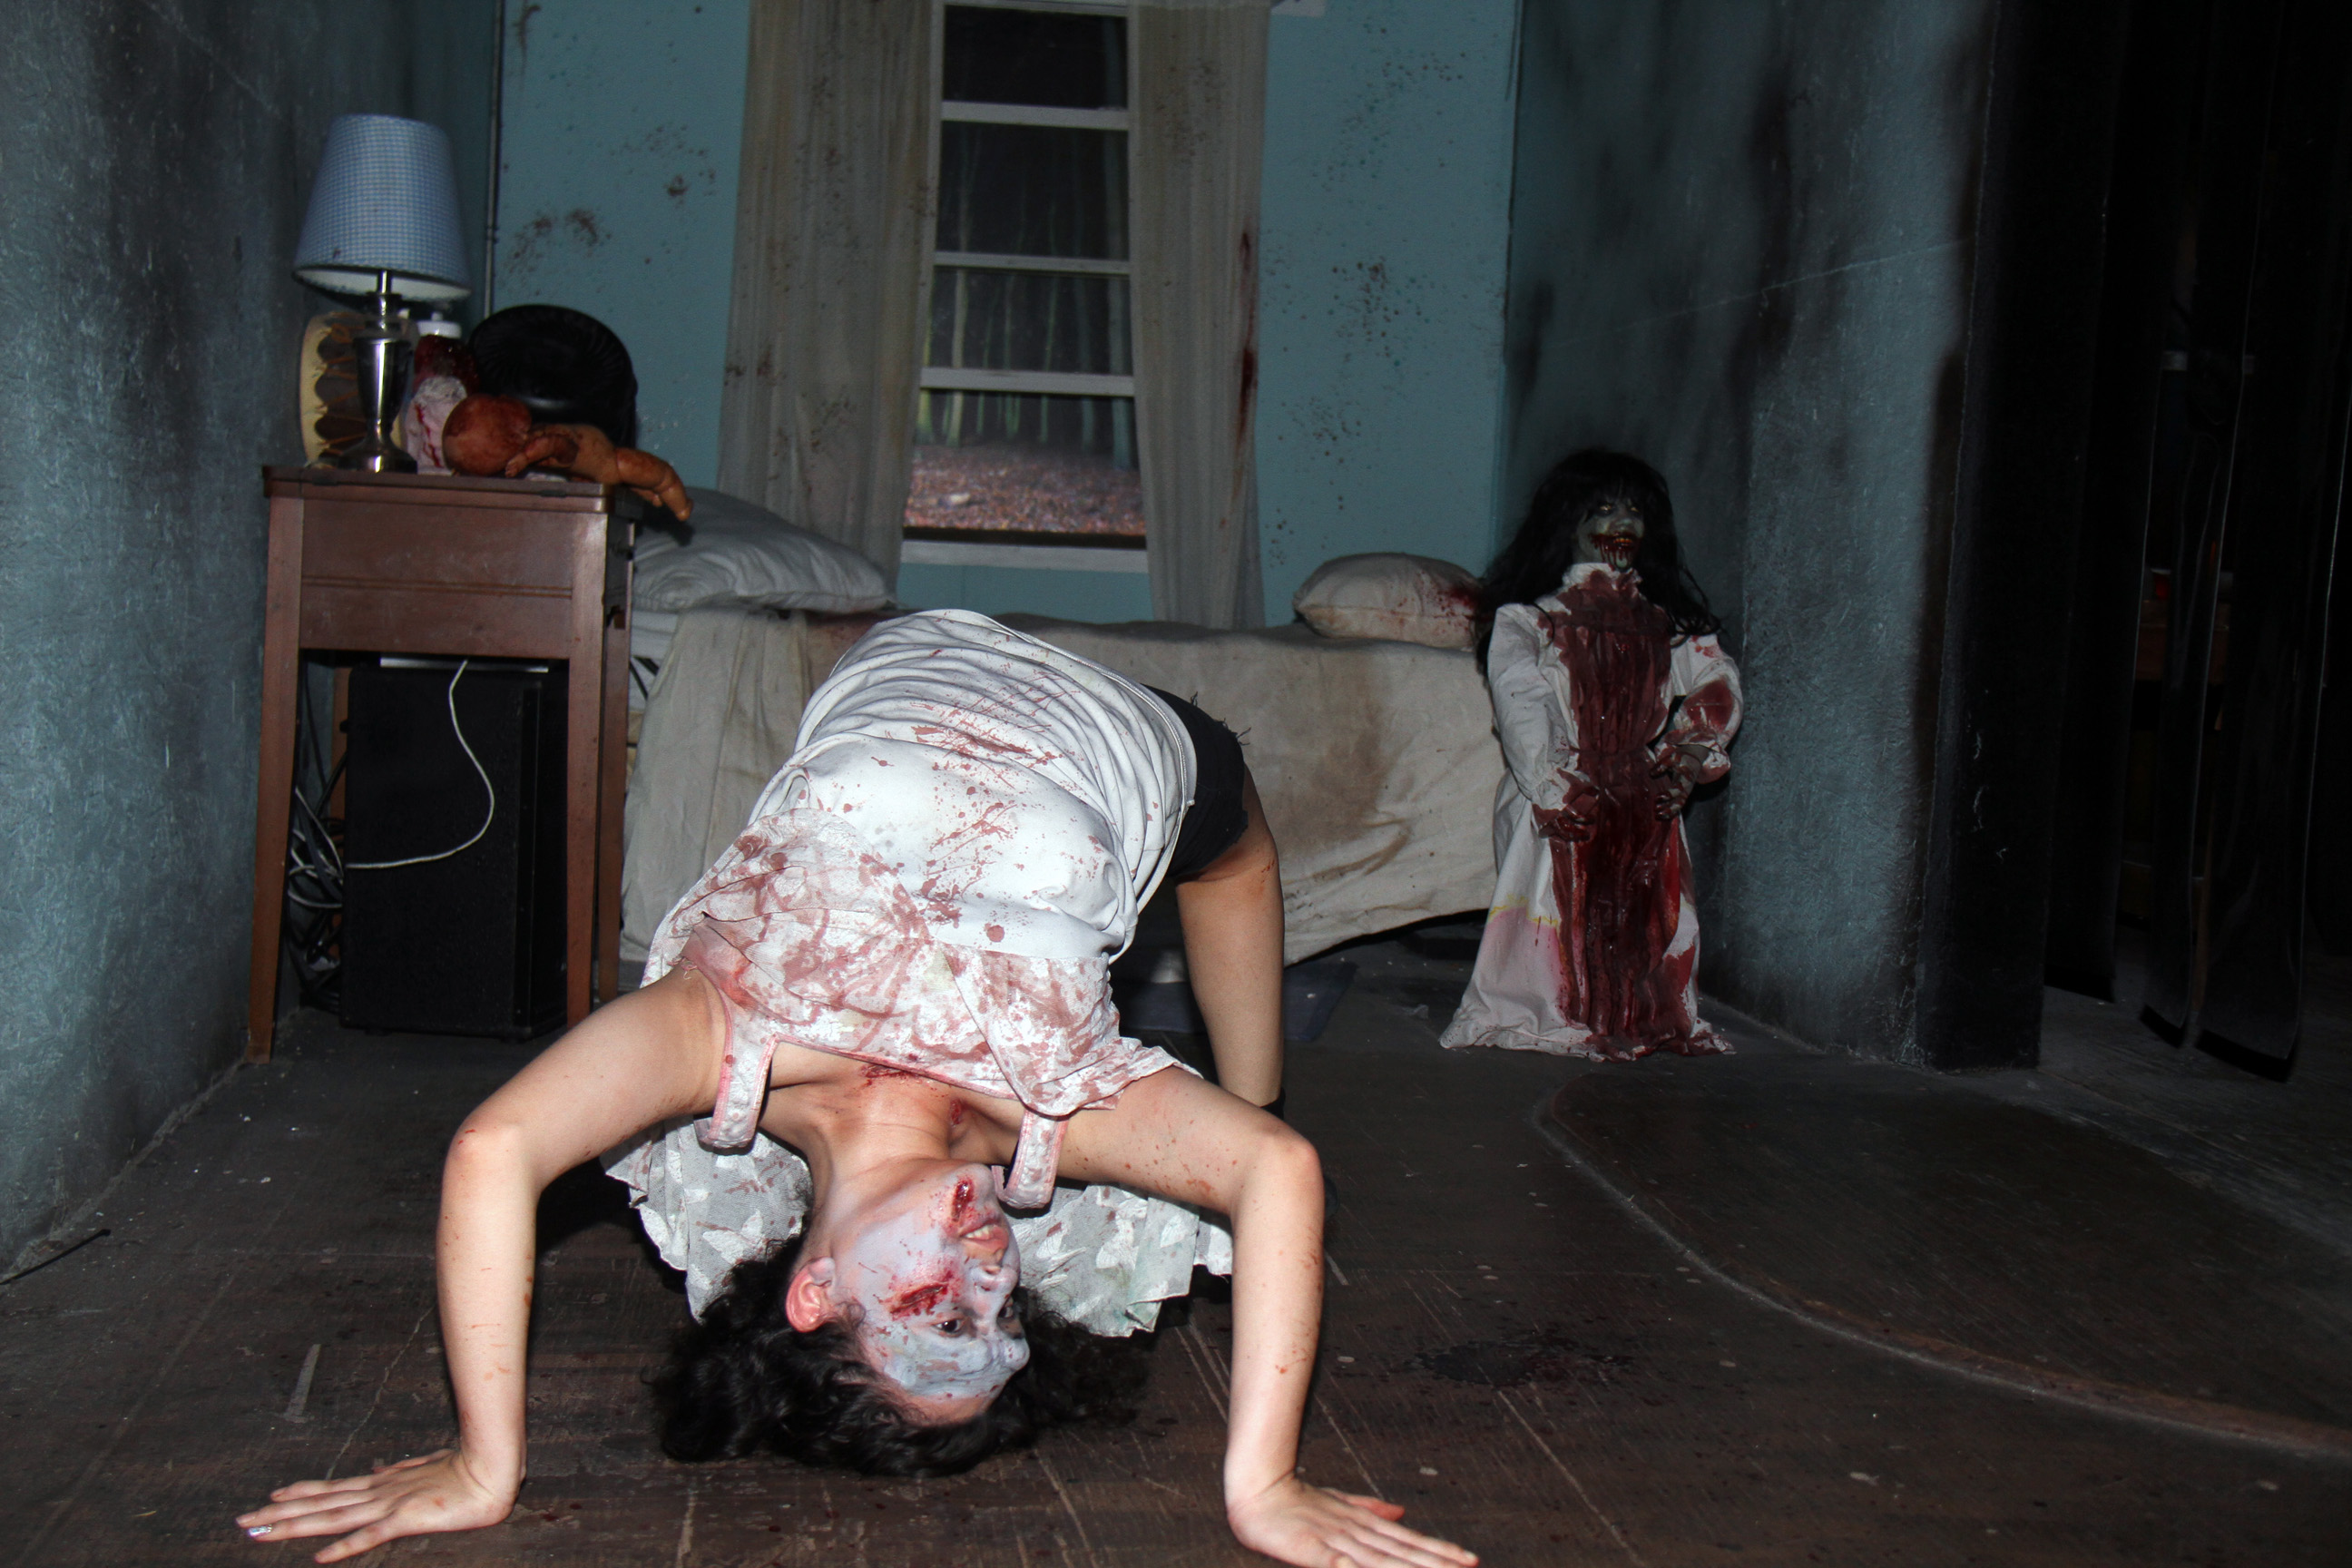 House of horror una experiencia inolvidable wow la for Cuartos para nina de 11 anos modernos